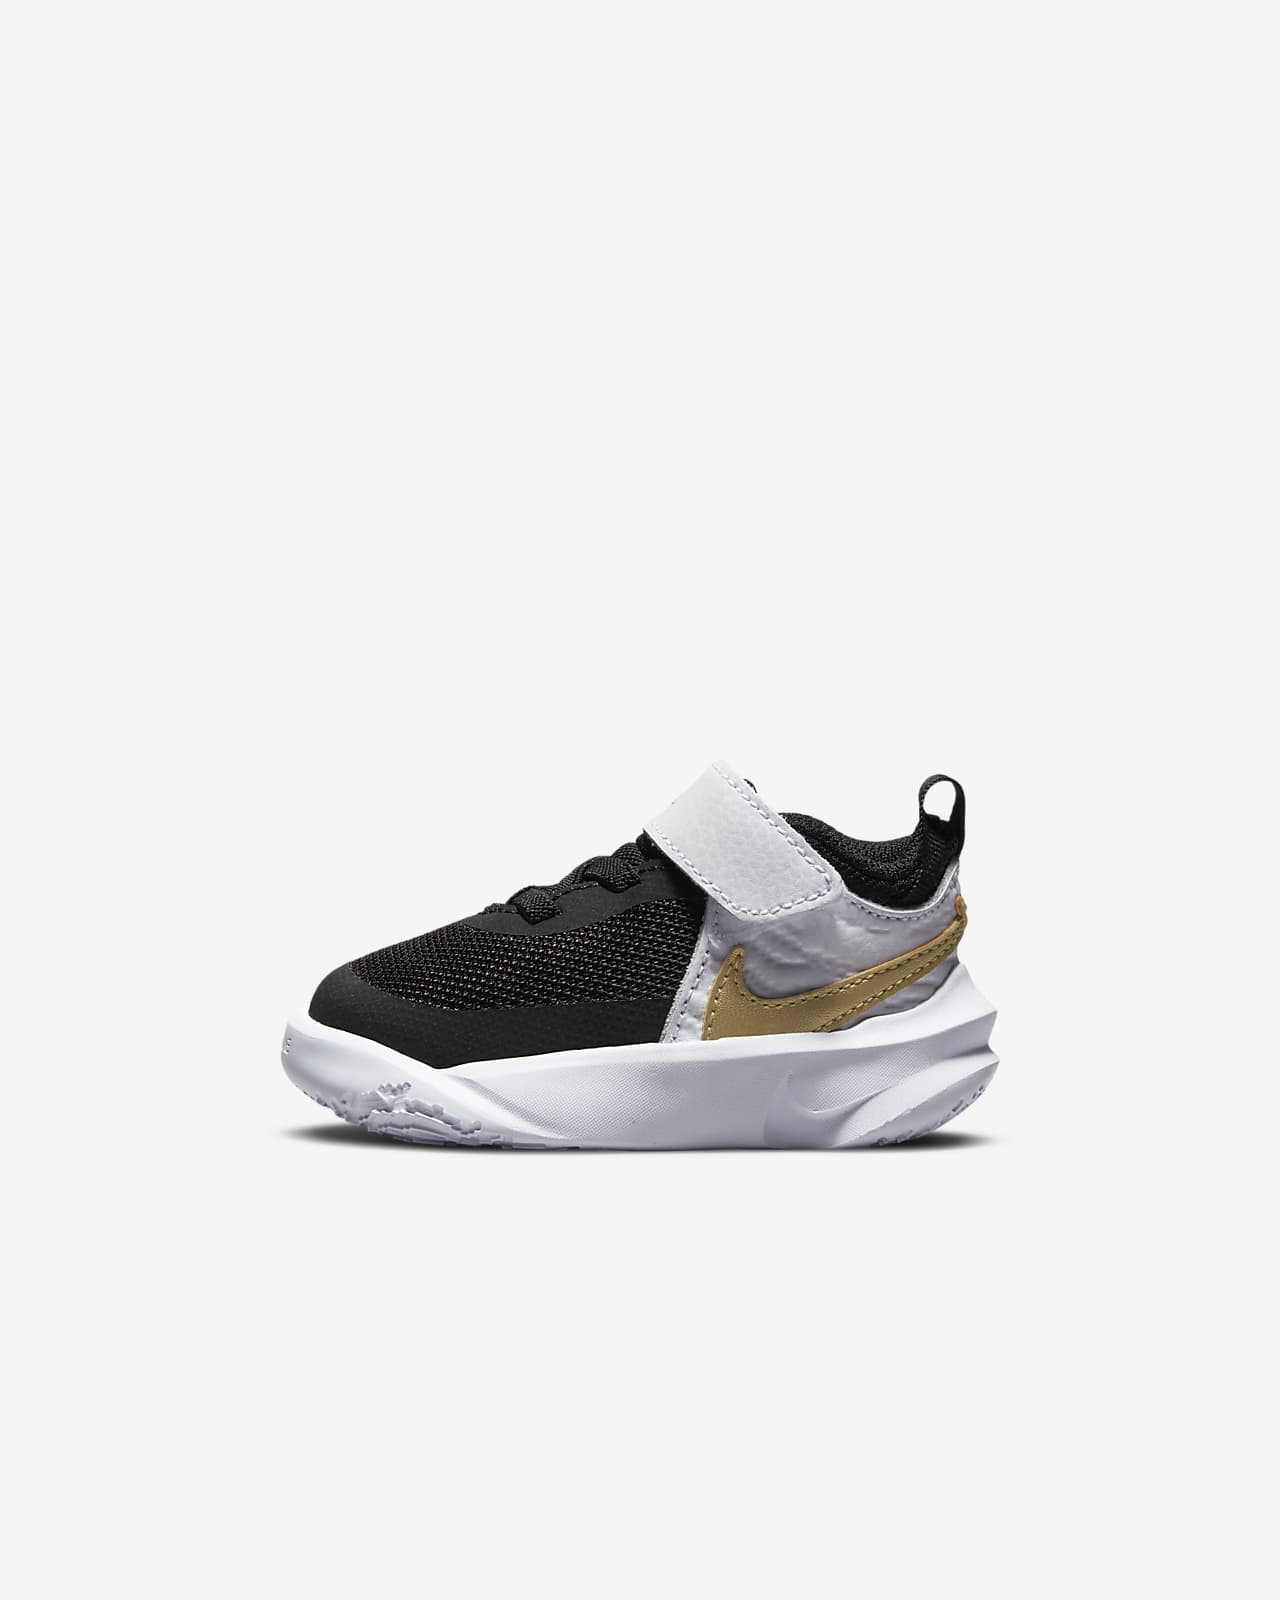 Nike Team Hustle D 10 Baby/Toddler Shoe